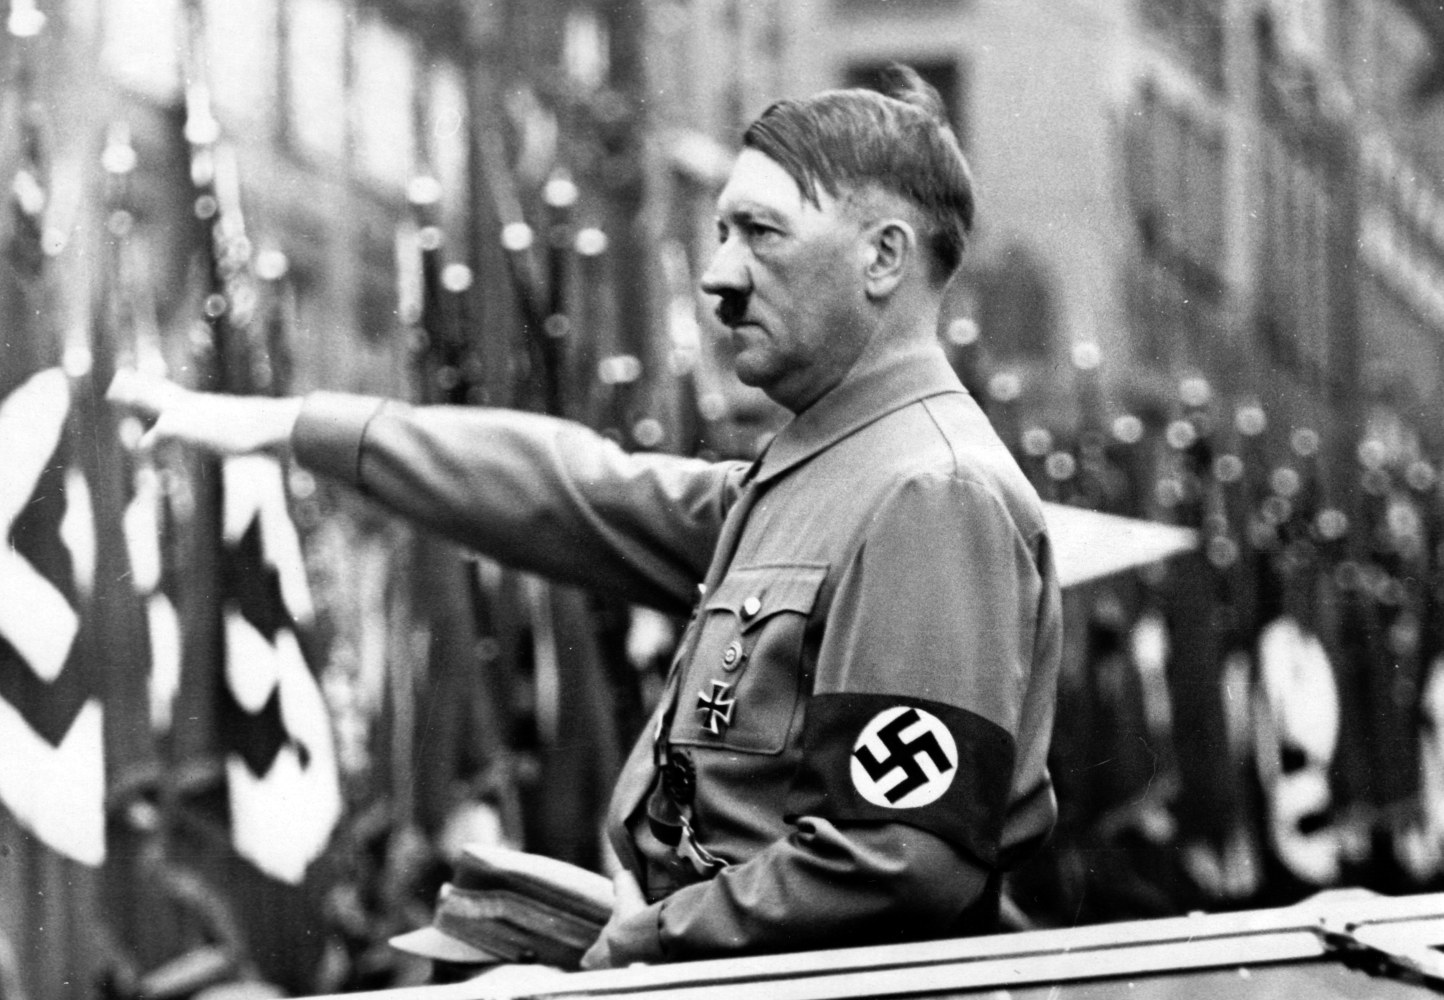 essay on adolf hitler and the holocaust Adolf hitler was the driving force behind the holocaust many people think he was insane to torture the human race that way others praise him for.